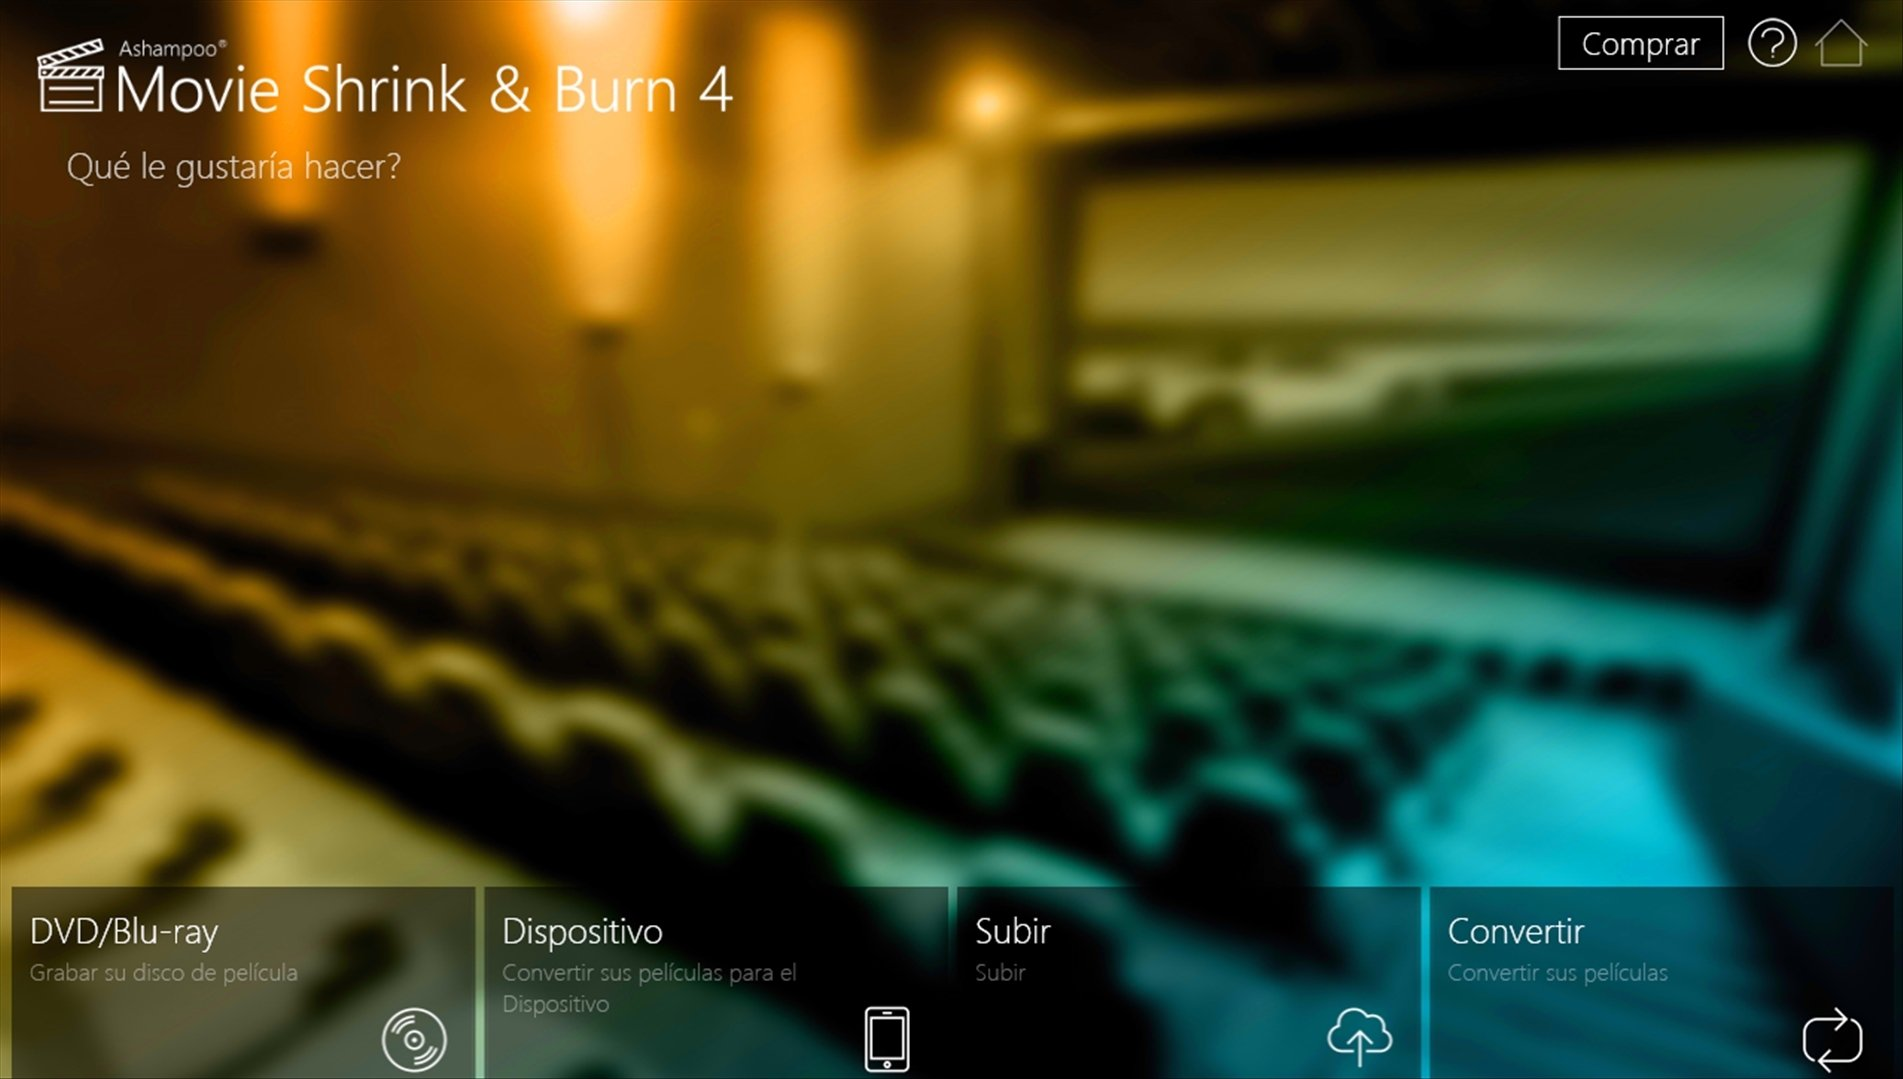 Free download ashampoo movie shrink & burn 2 2. 21.